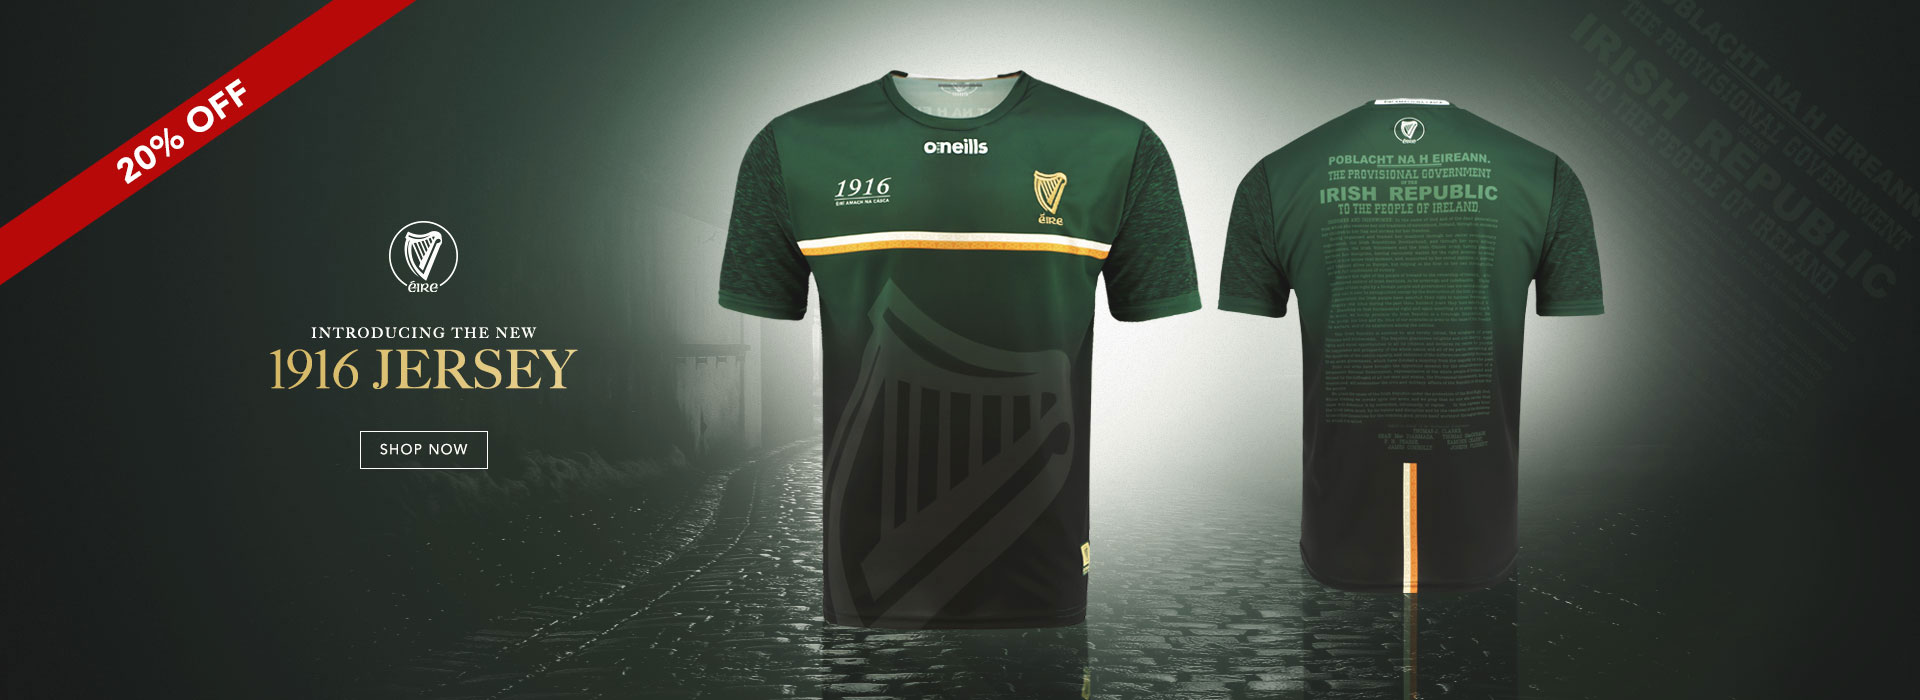 IRELAND HOME T-Shirt FIND YOUR OWN Country Men OR Women/'s Irish Dublin football